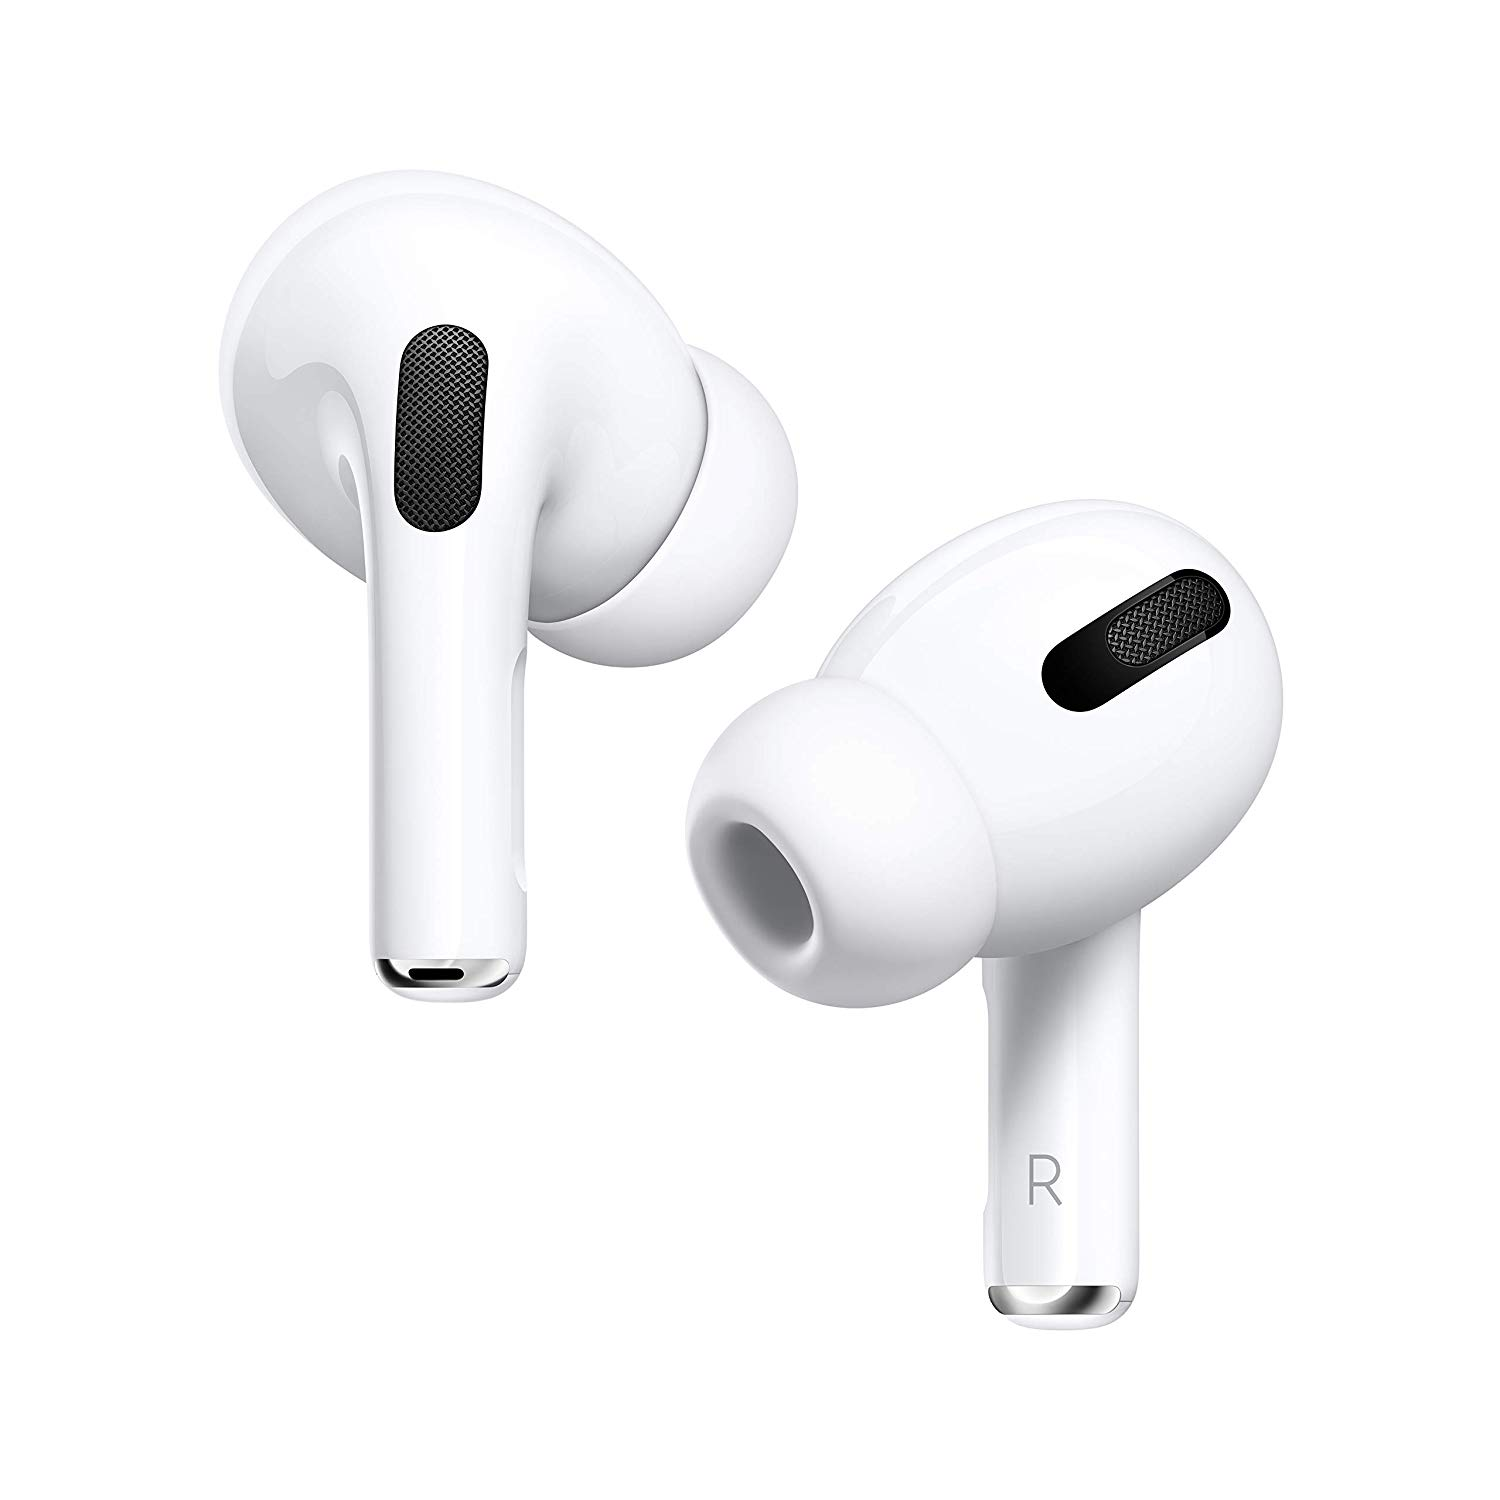 New Apple AirPods Pro only $234.99! (was $249)